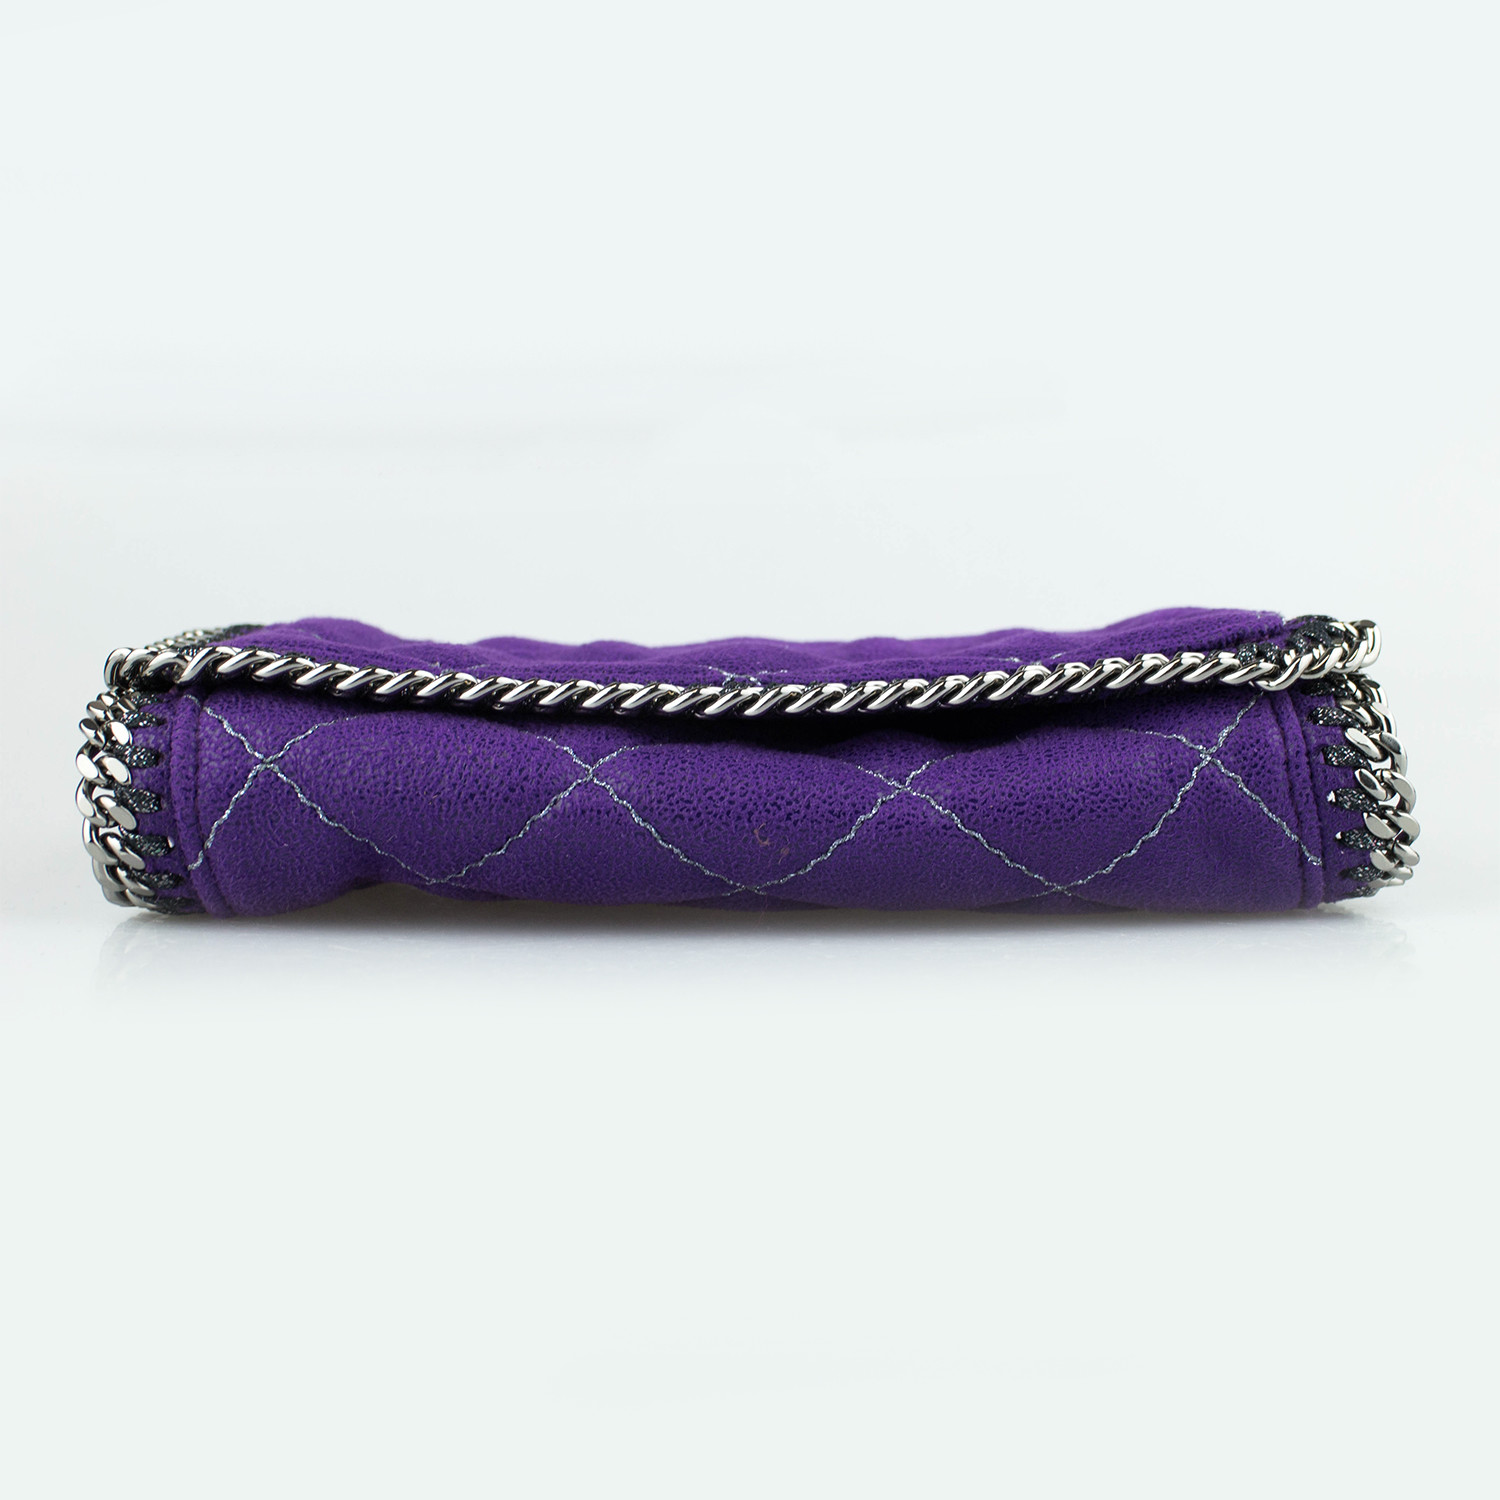 26a0a1dc61f7 Stella McCartney    Quilted Leather Falabella Crossbody Bag    Purple